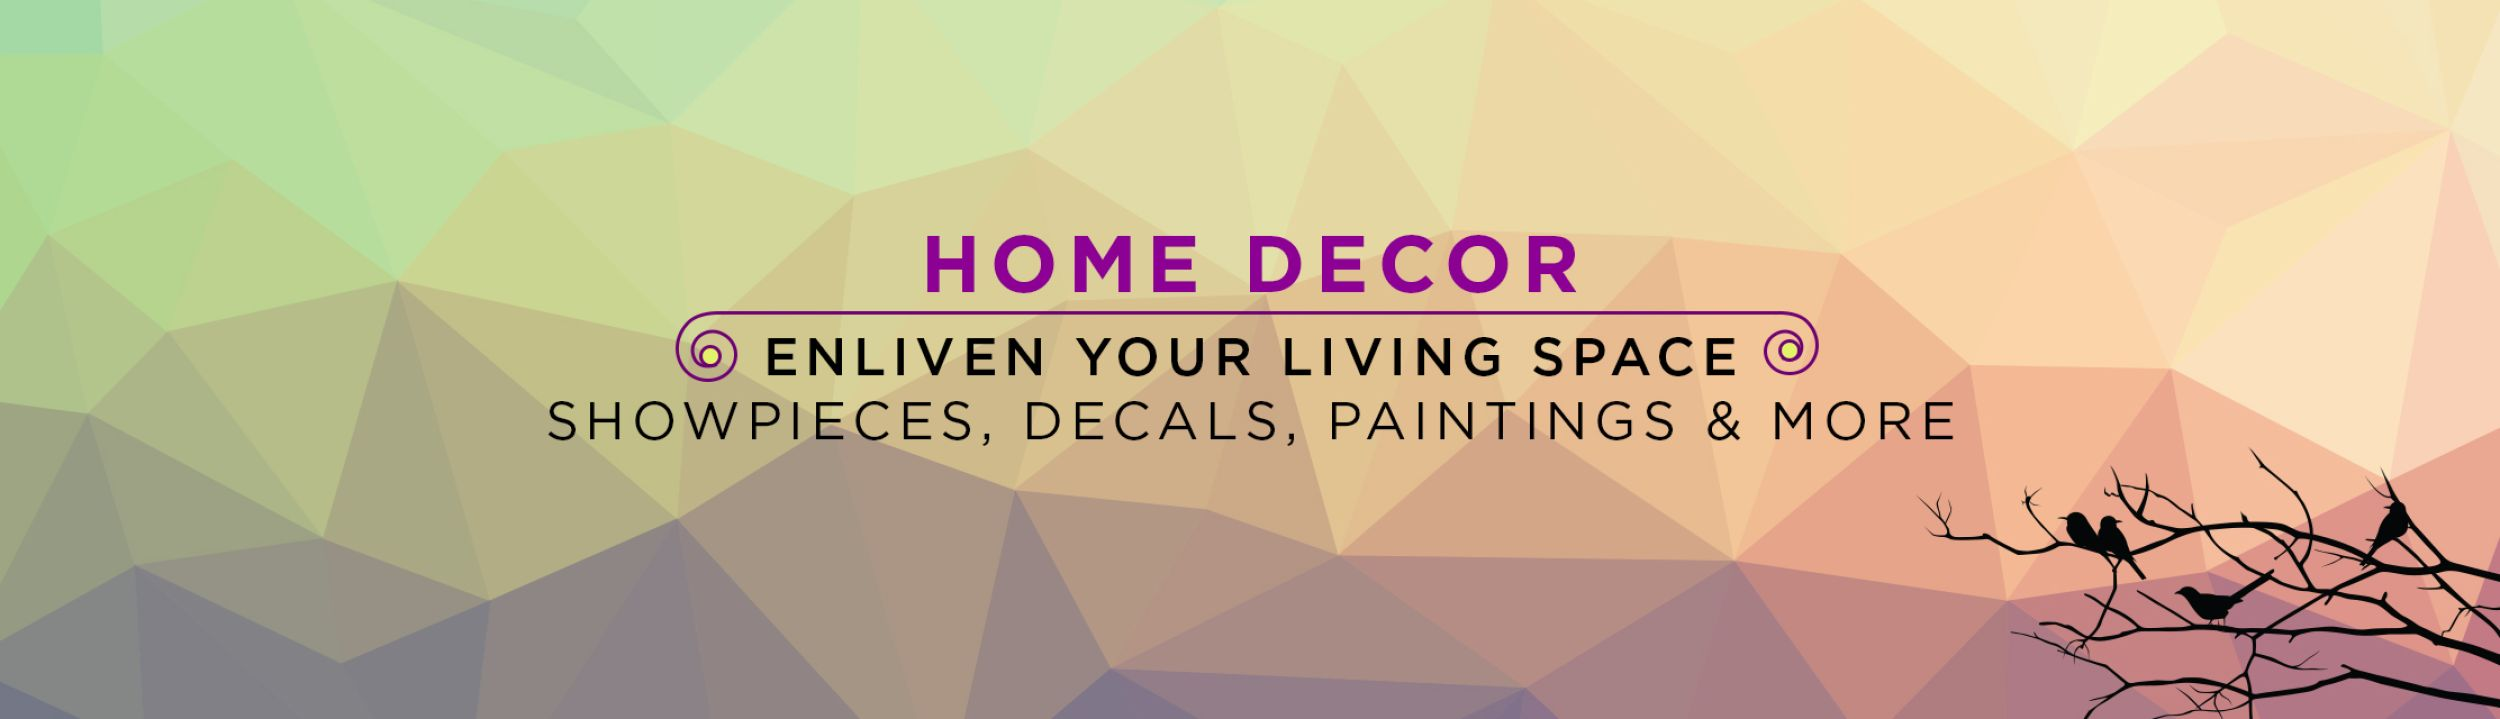 Home Decor Range